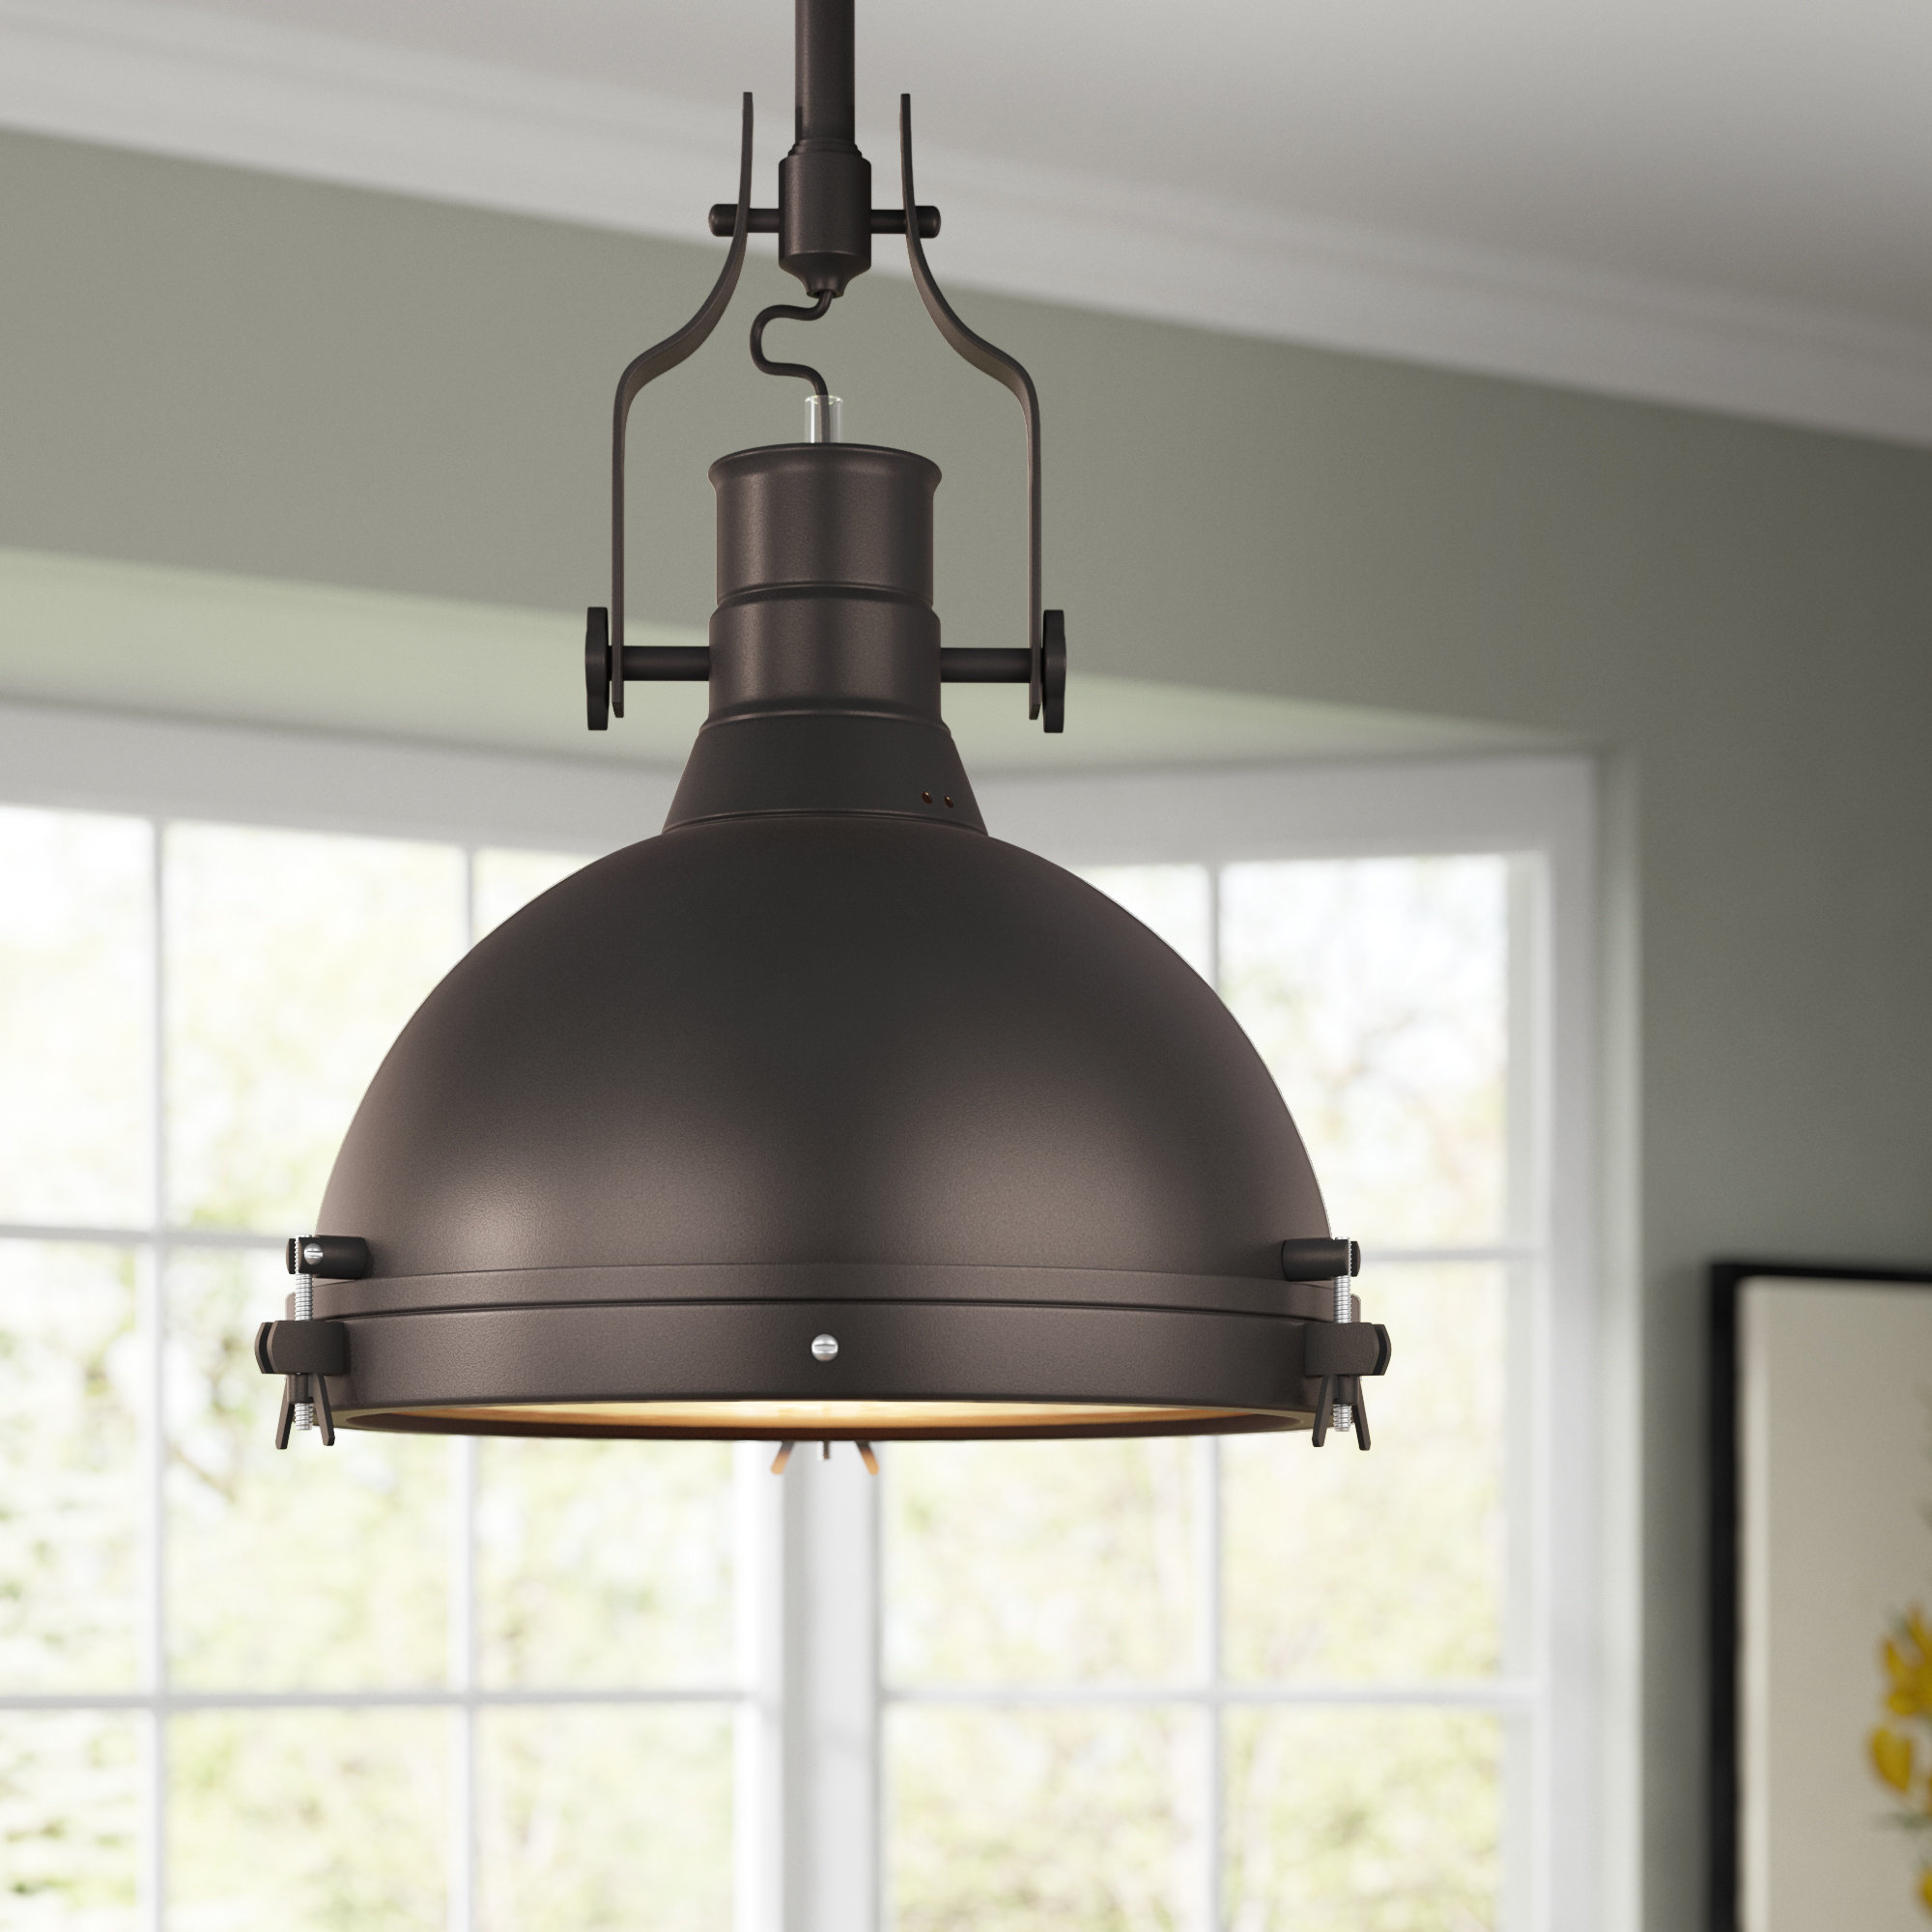 Wamblee 1 Light Single Dome Pendant With Best And Newest Freeda 1 Light Single Dome Pendants (View 19 of 20)